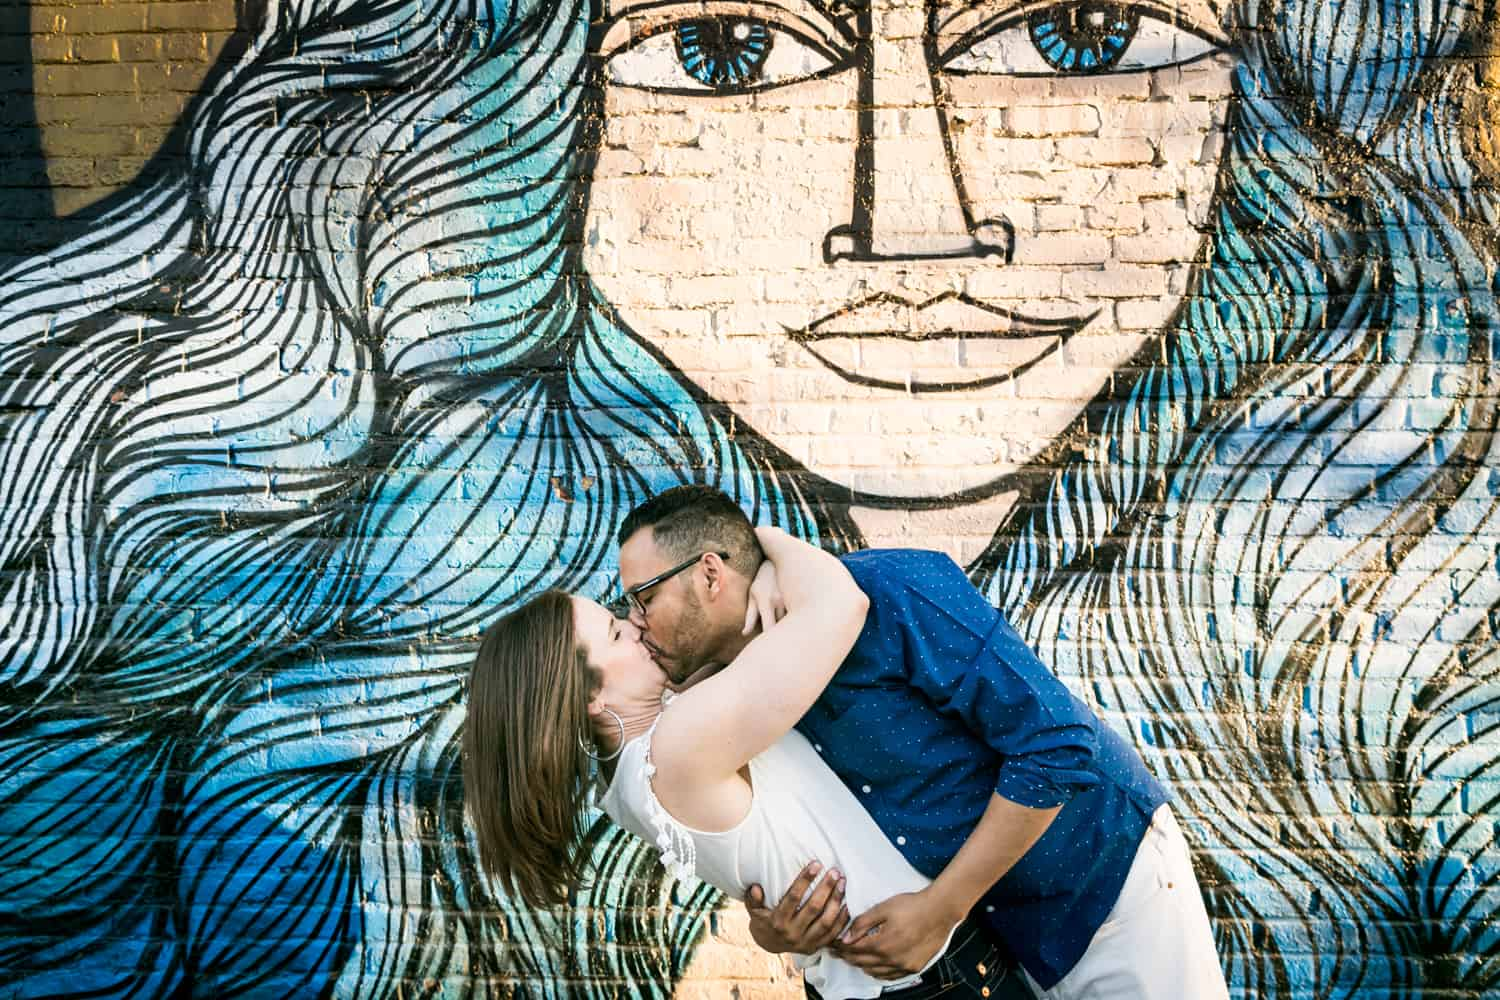 Couple kissing in front of graffiti